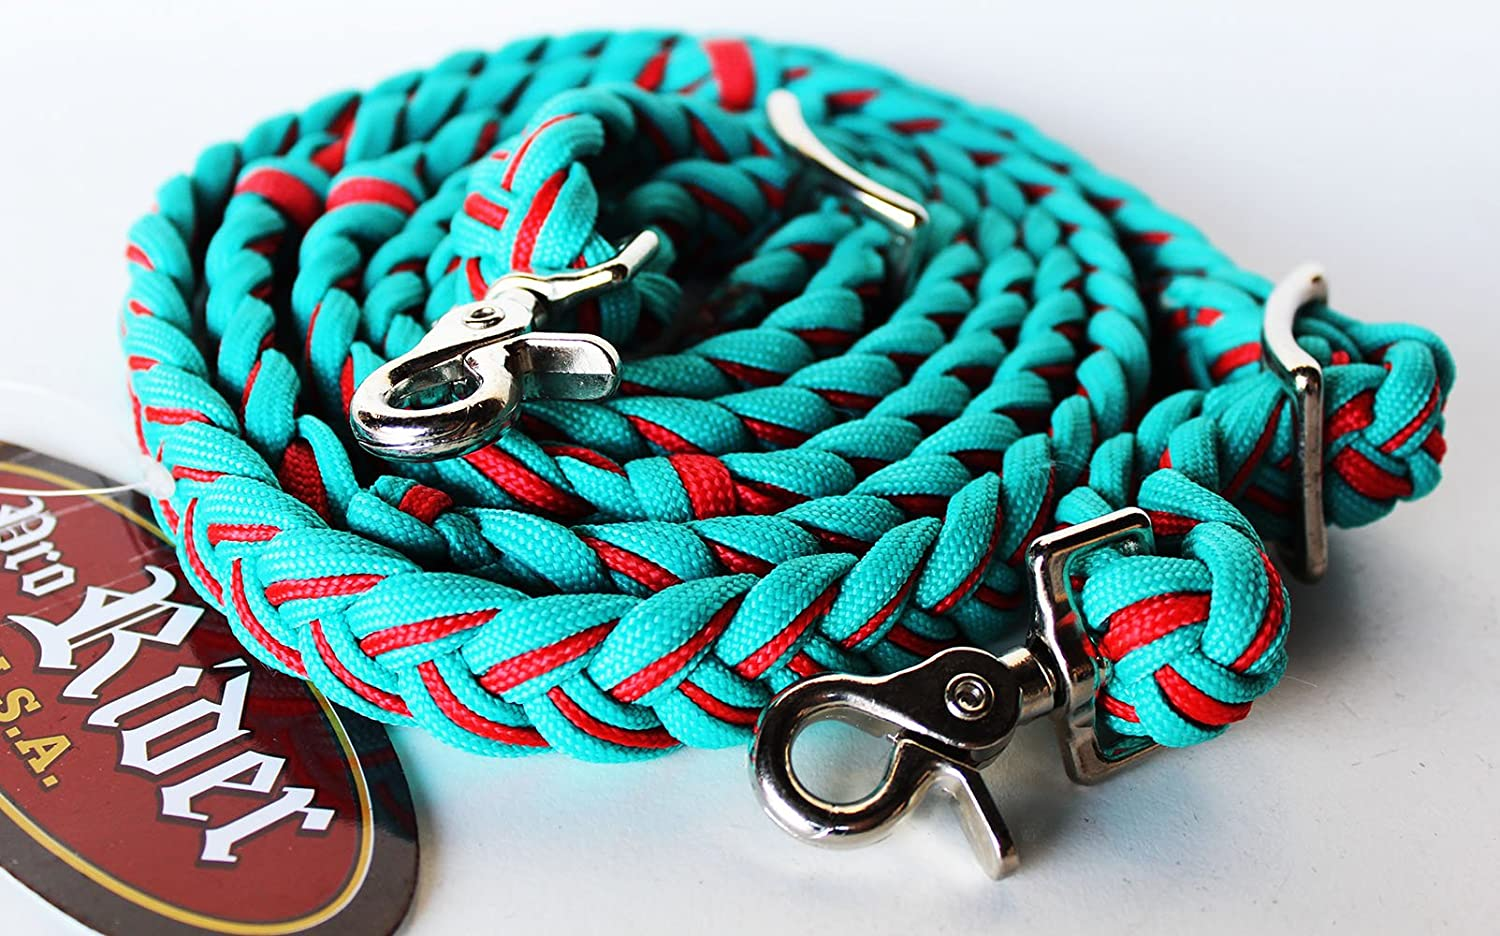 Horse Western Knotted Nylon Braided Barrel Roping Reins Teal Black 60701TL